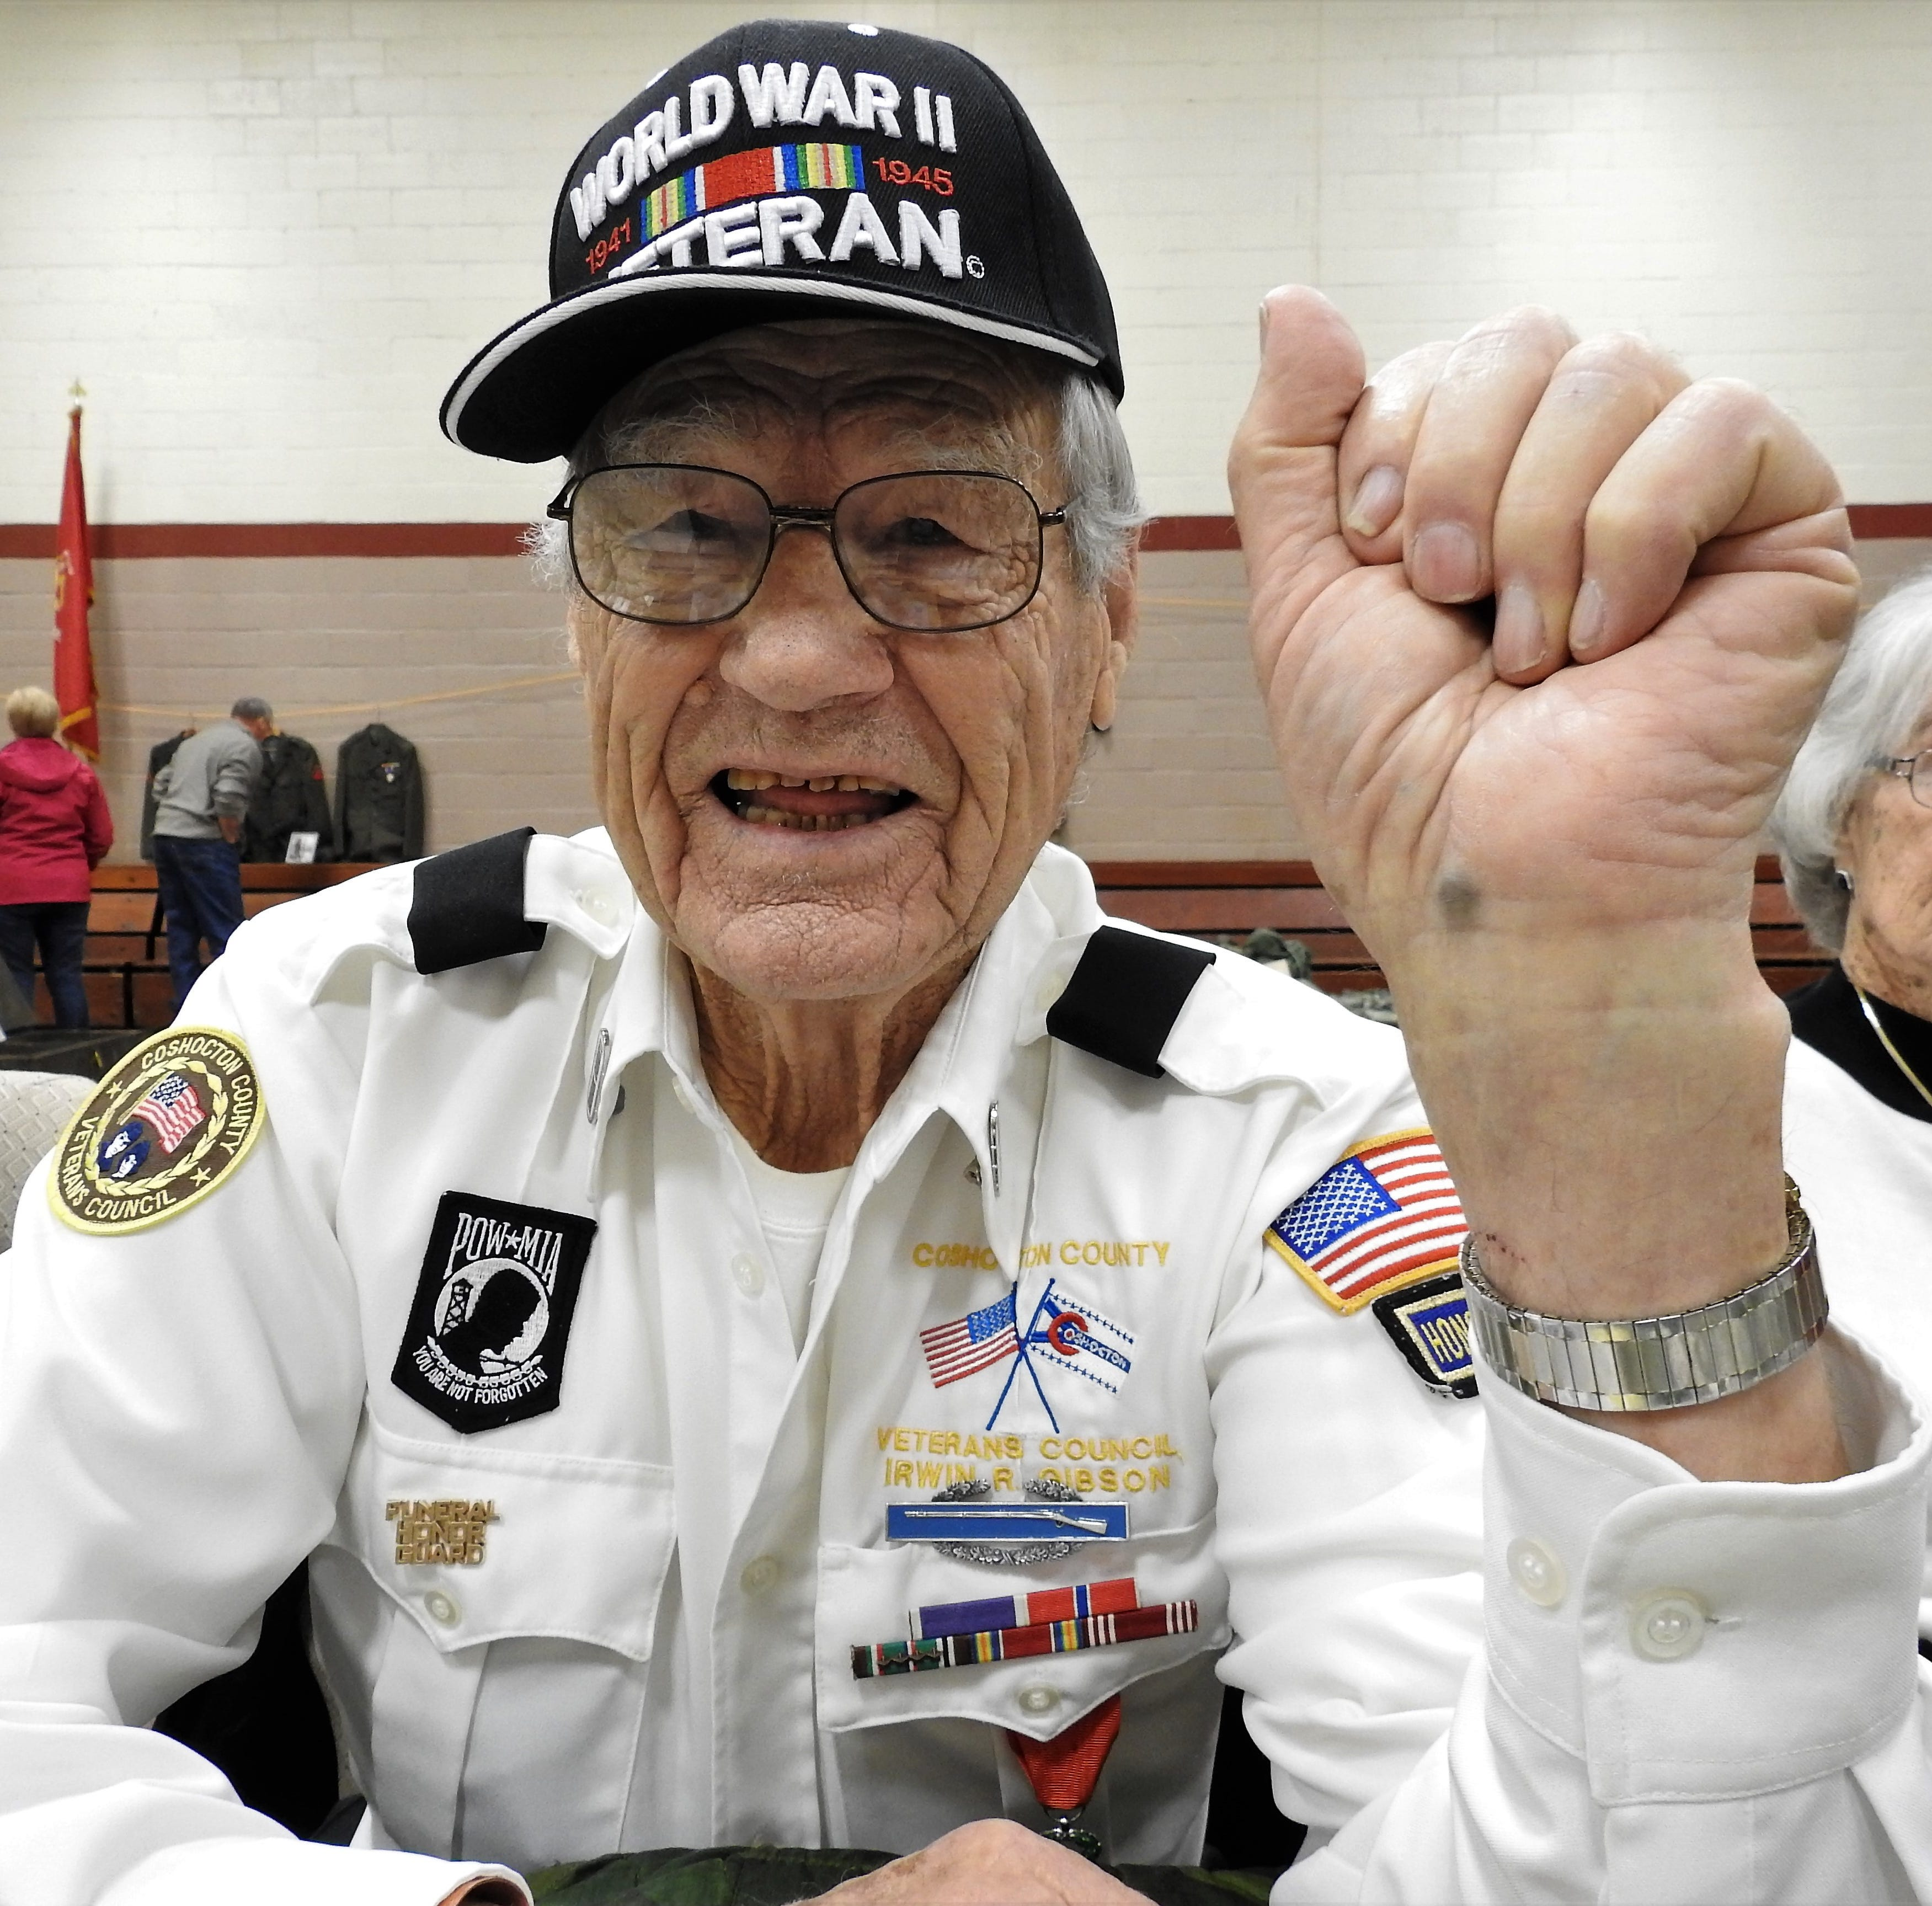 World War II veteran carries memories, scars of service